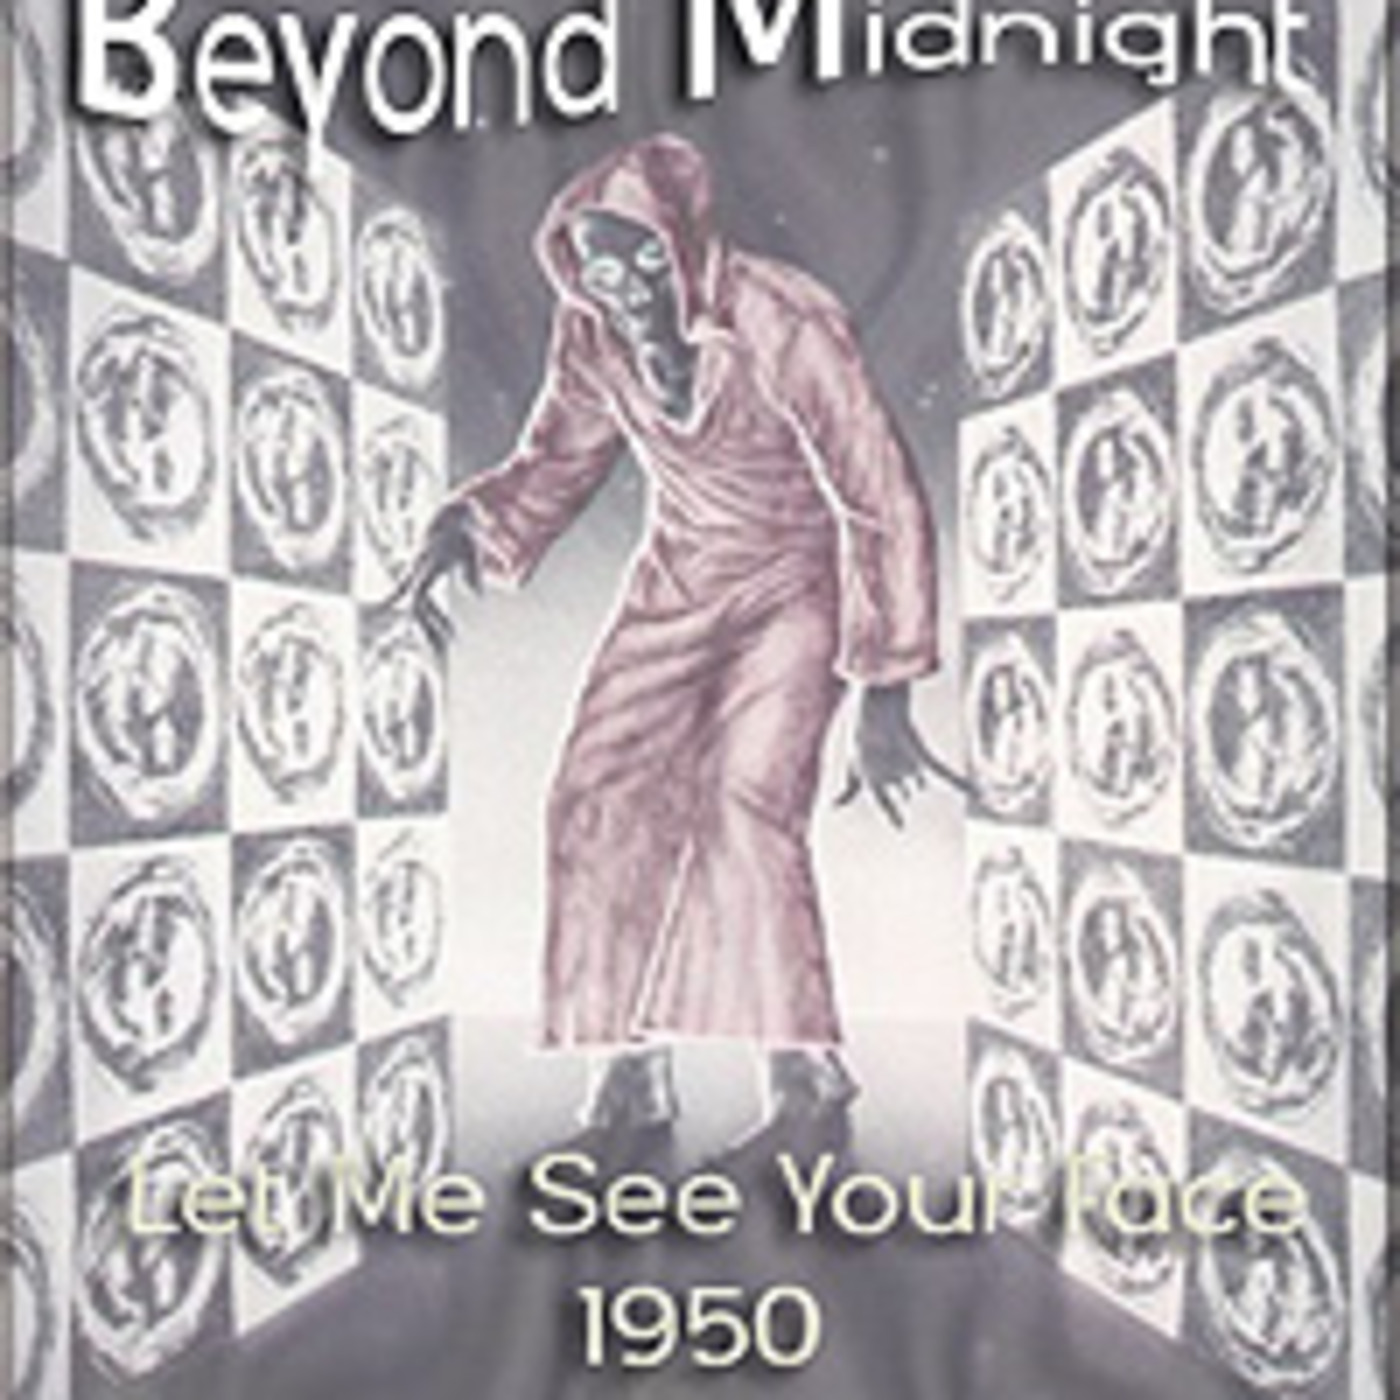 Beyond Midnight - Let Me See Your Face (1950)